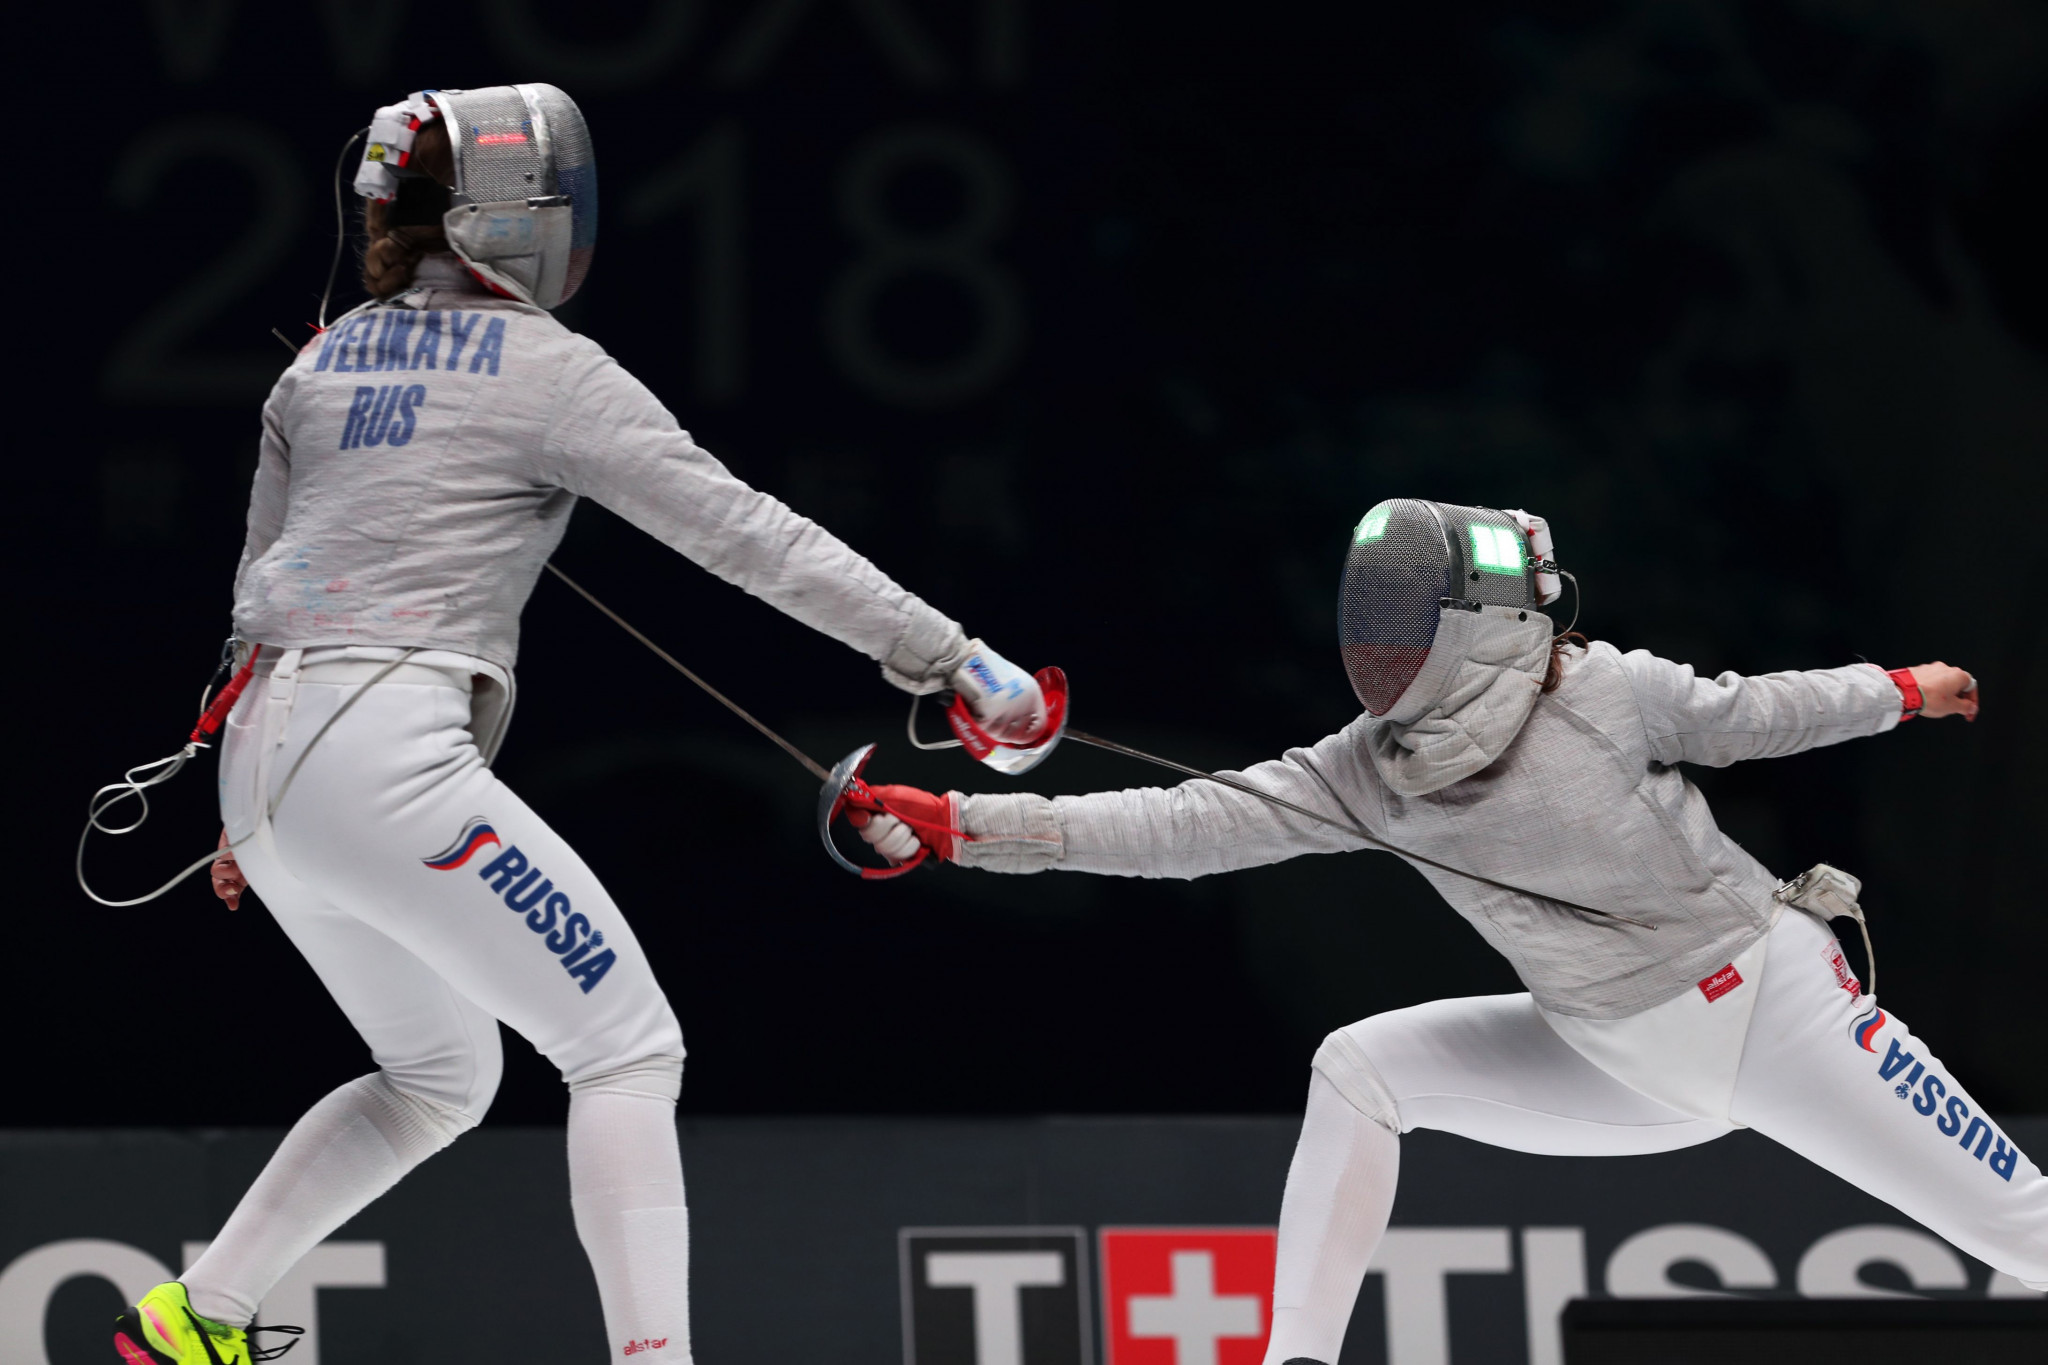 Russia's Sofya Velikaya will be hoping to justify her number one ranking at the FIE Women's Sabre World Cup in Tunis ©Getty Images